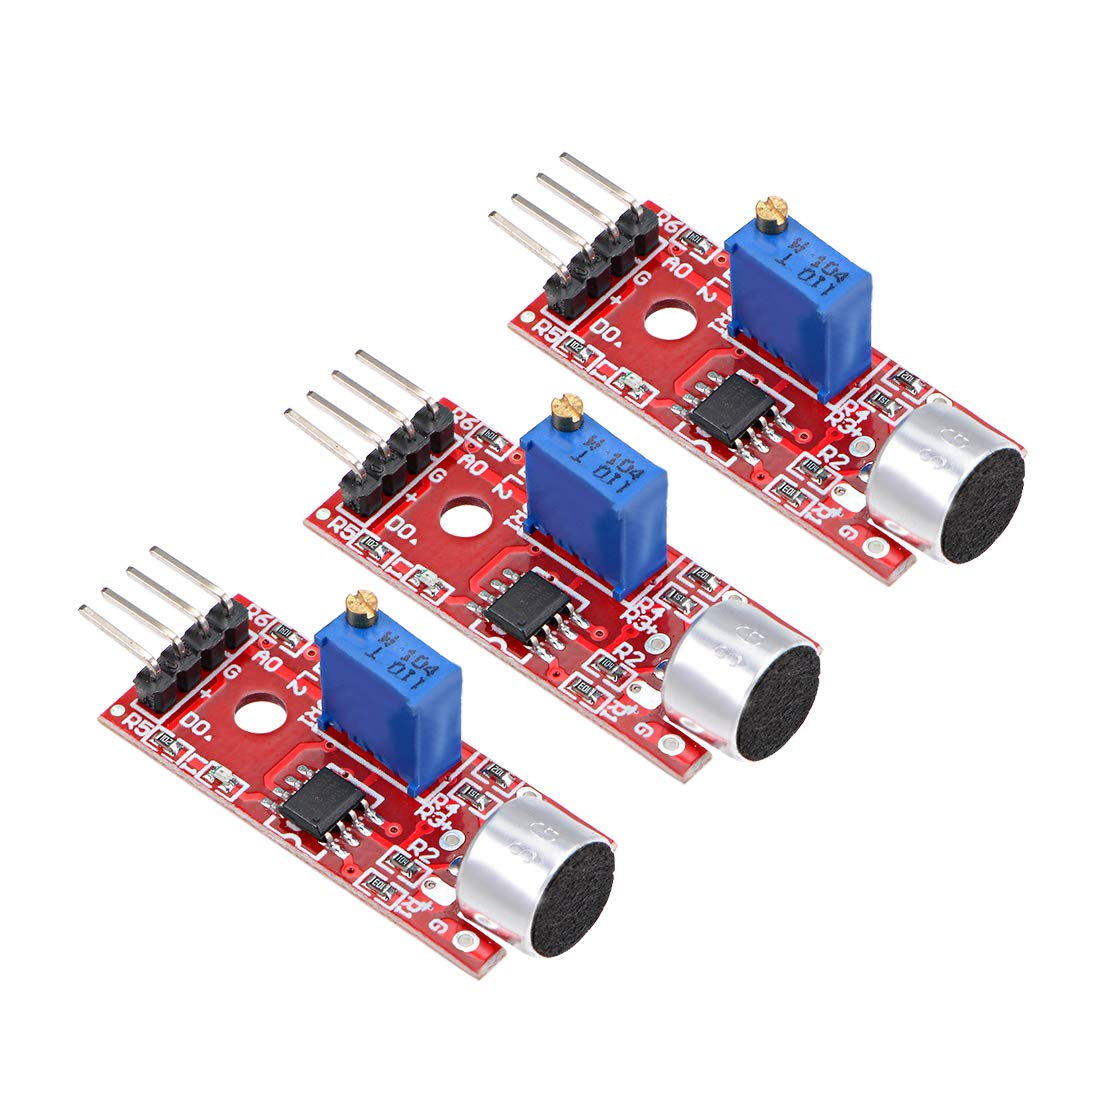 uxcell Microphone Sound Sensor Voice Detection Module with Do Ao Output for Arduino DIY Projects 5pcs